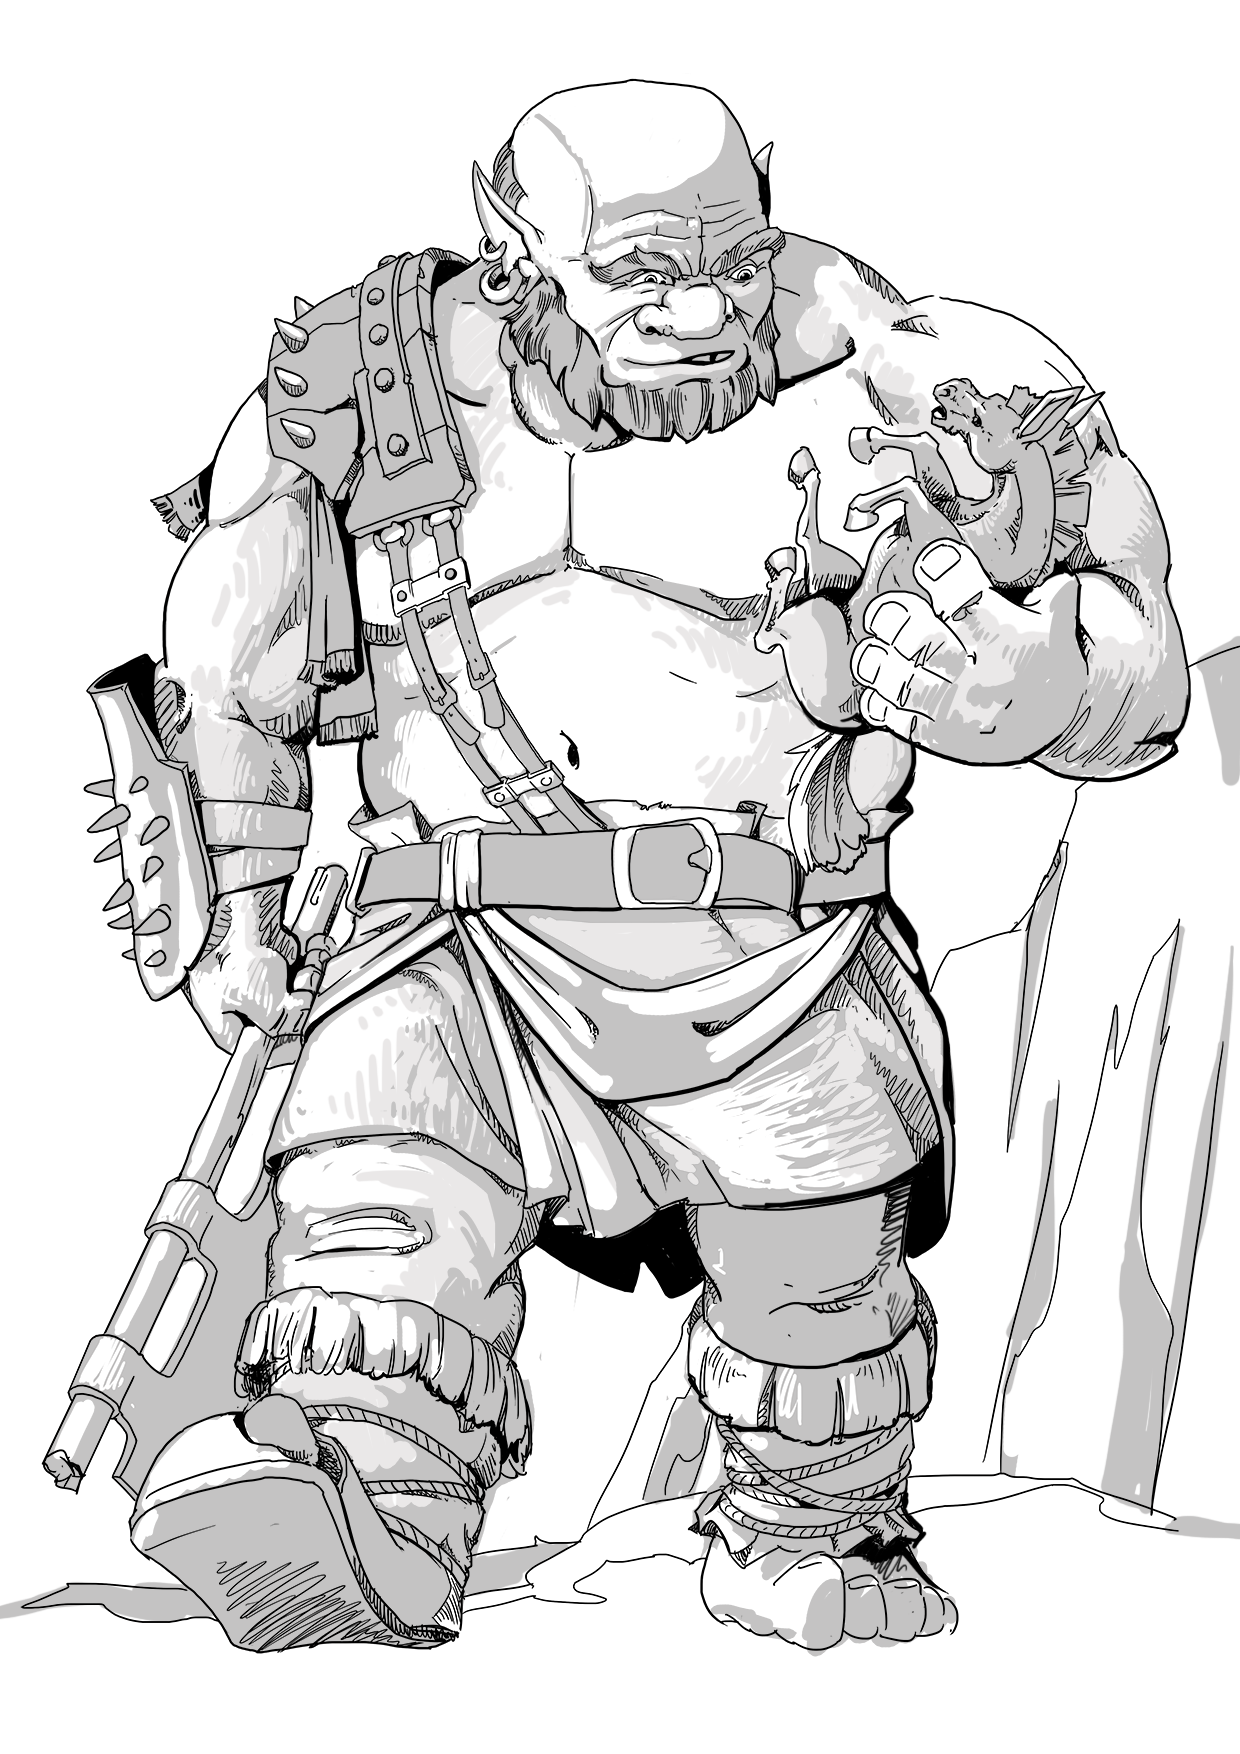 Dungeons and Dragons Ogre with Horse